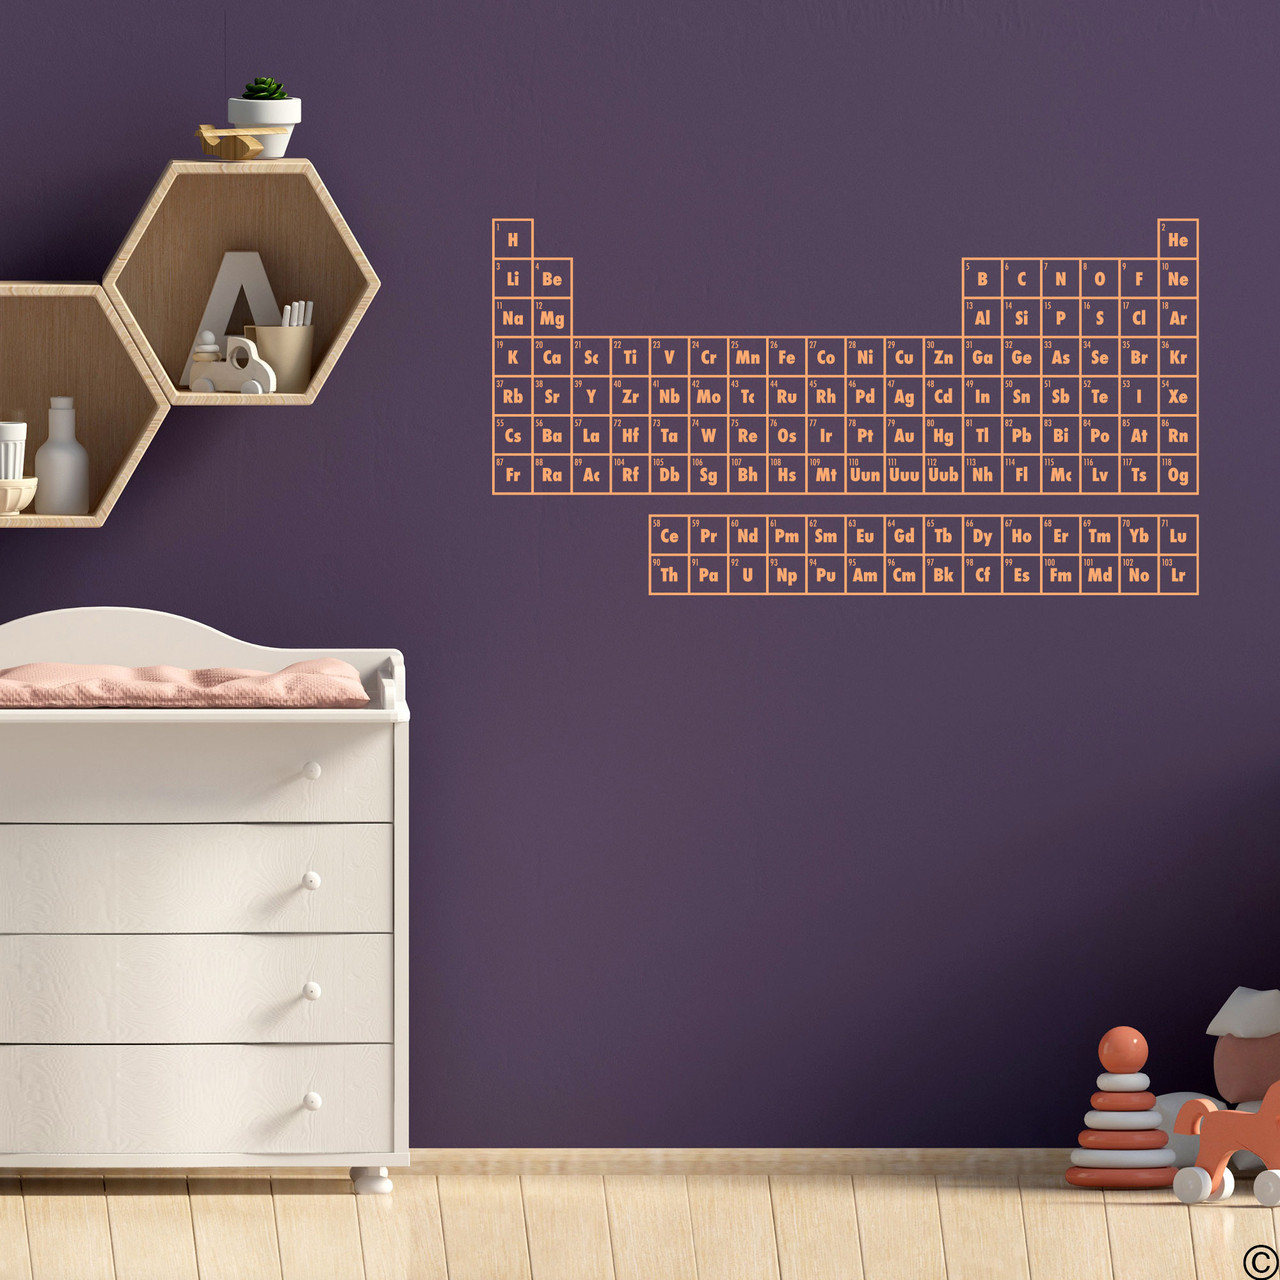 The Periodic Table of Elements wall decal shown here in limited edition apricot vinyl.